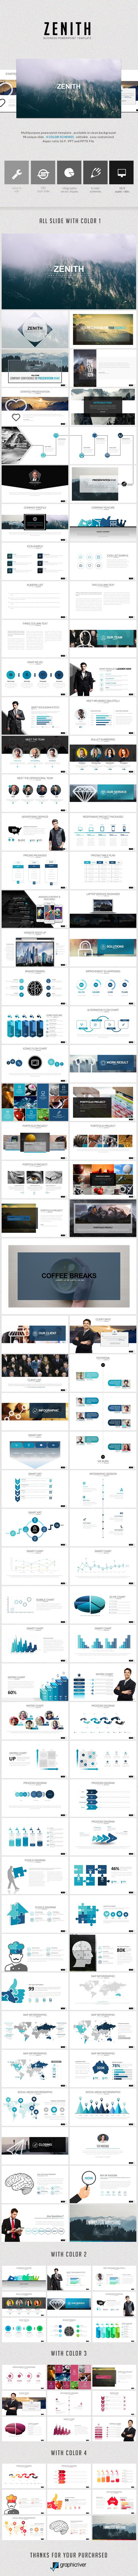 Zenith Powerpoint Template - Business PowerPoint Templates